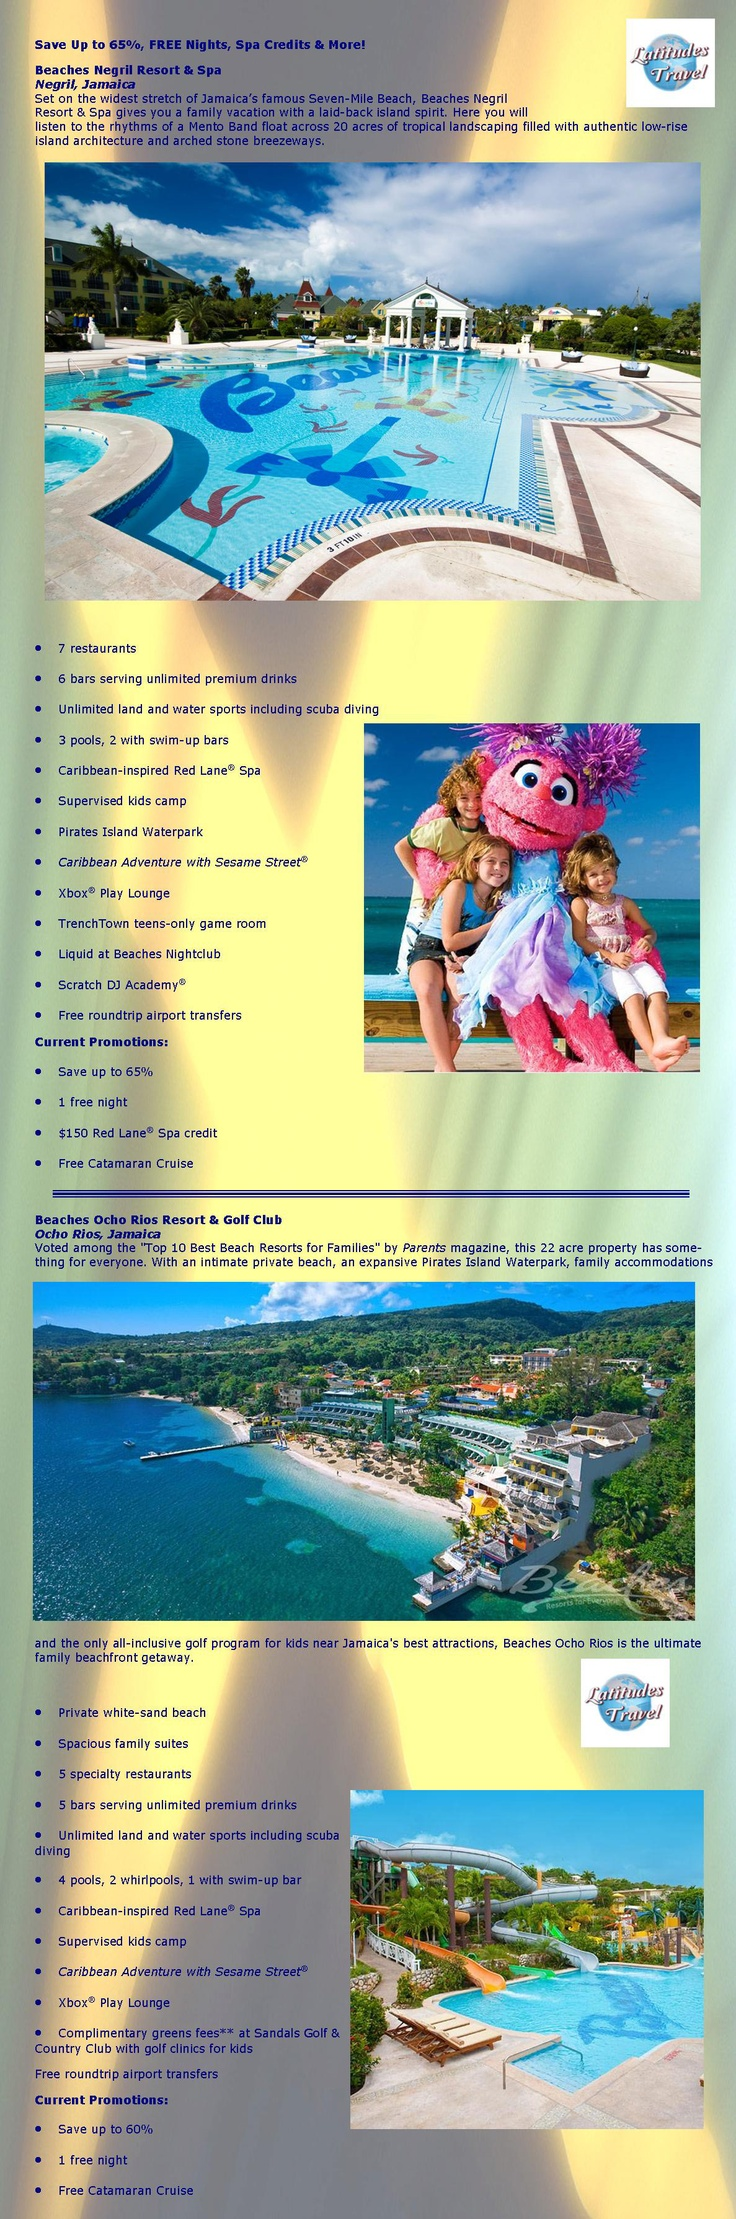 Book between 10/05/12 - 12/05/12 and Save up to 65%, get FREE Nights, Spa Credits & More   Please Contact Latitudes Travel (414) 433-4873 or (855) 433-4870 for details.  www.LatitudesWI.com  #beaches #all-inclusive #resort #vacations #sandals   Added values based on availability, room category, dates. Other restrictions may apply and are subject to change. diving included for certified divers. Cancellation penalties, payment requirements and holiday/weekend/special event surcharges may…